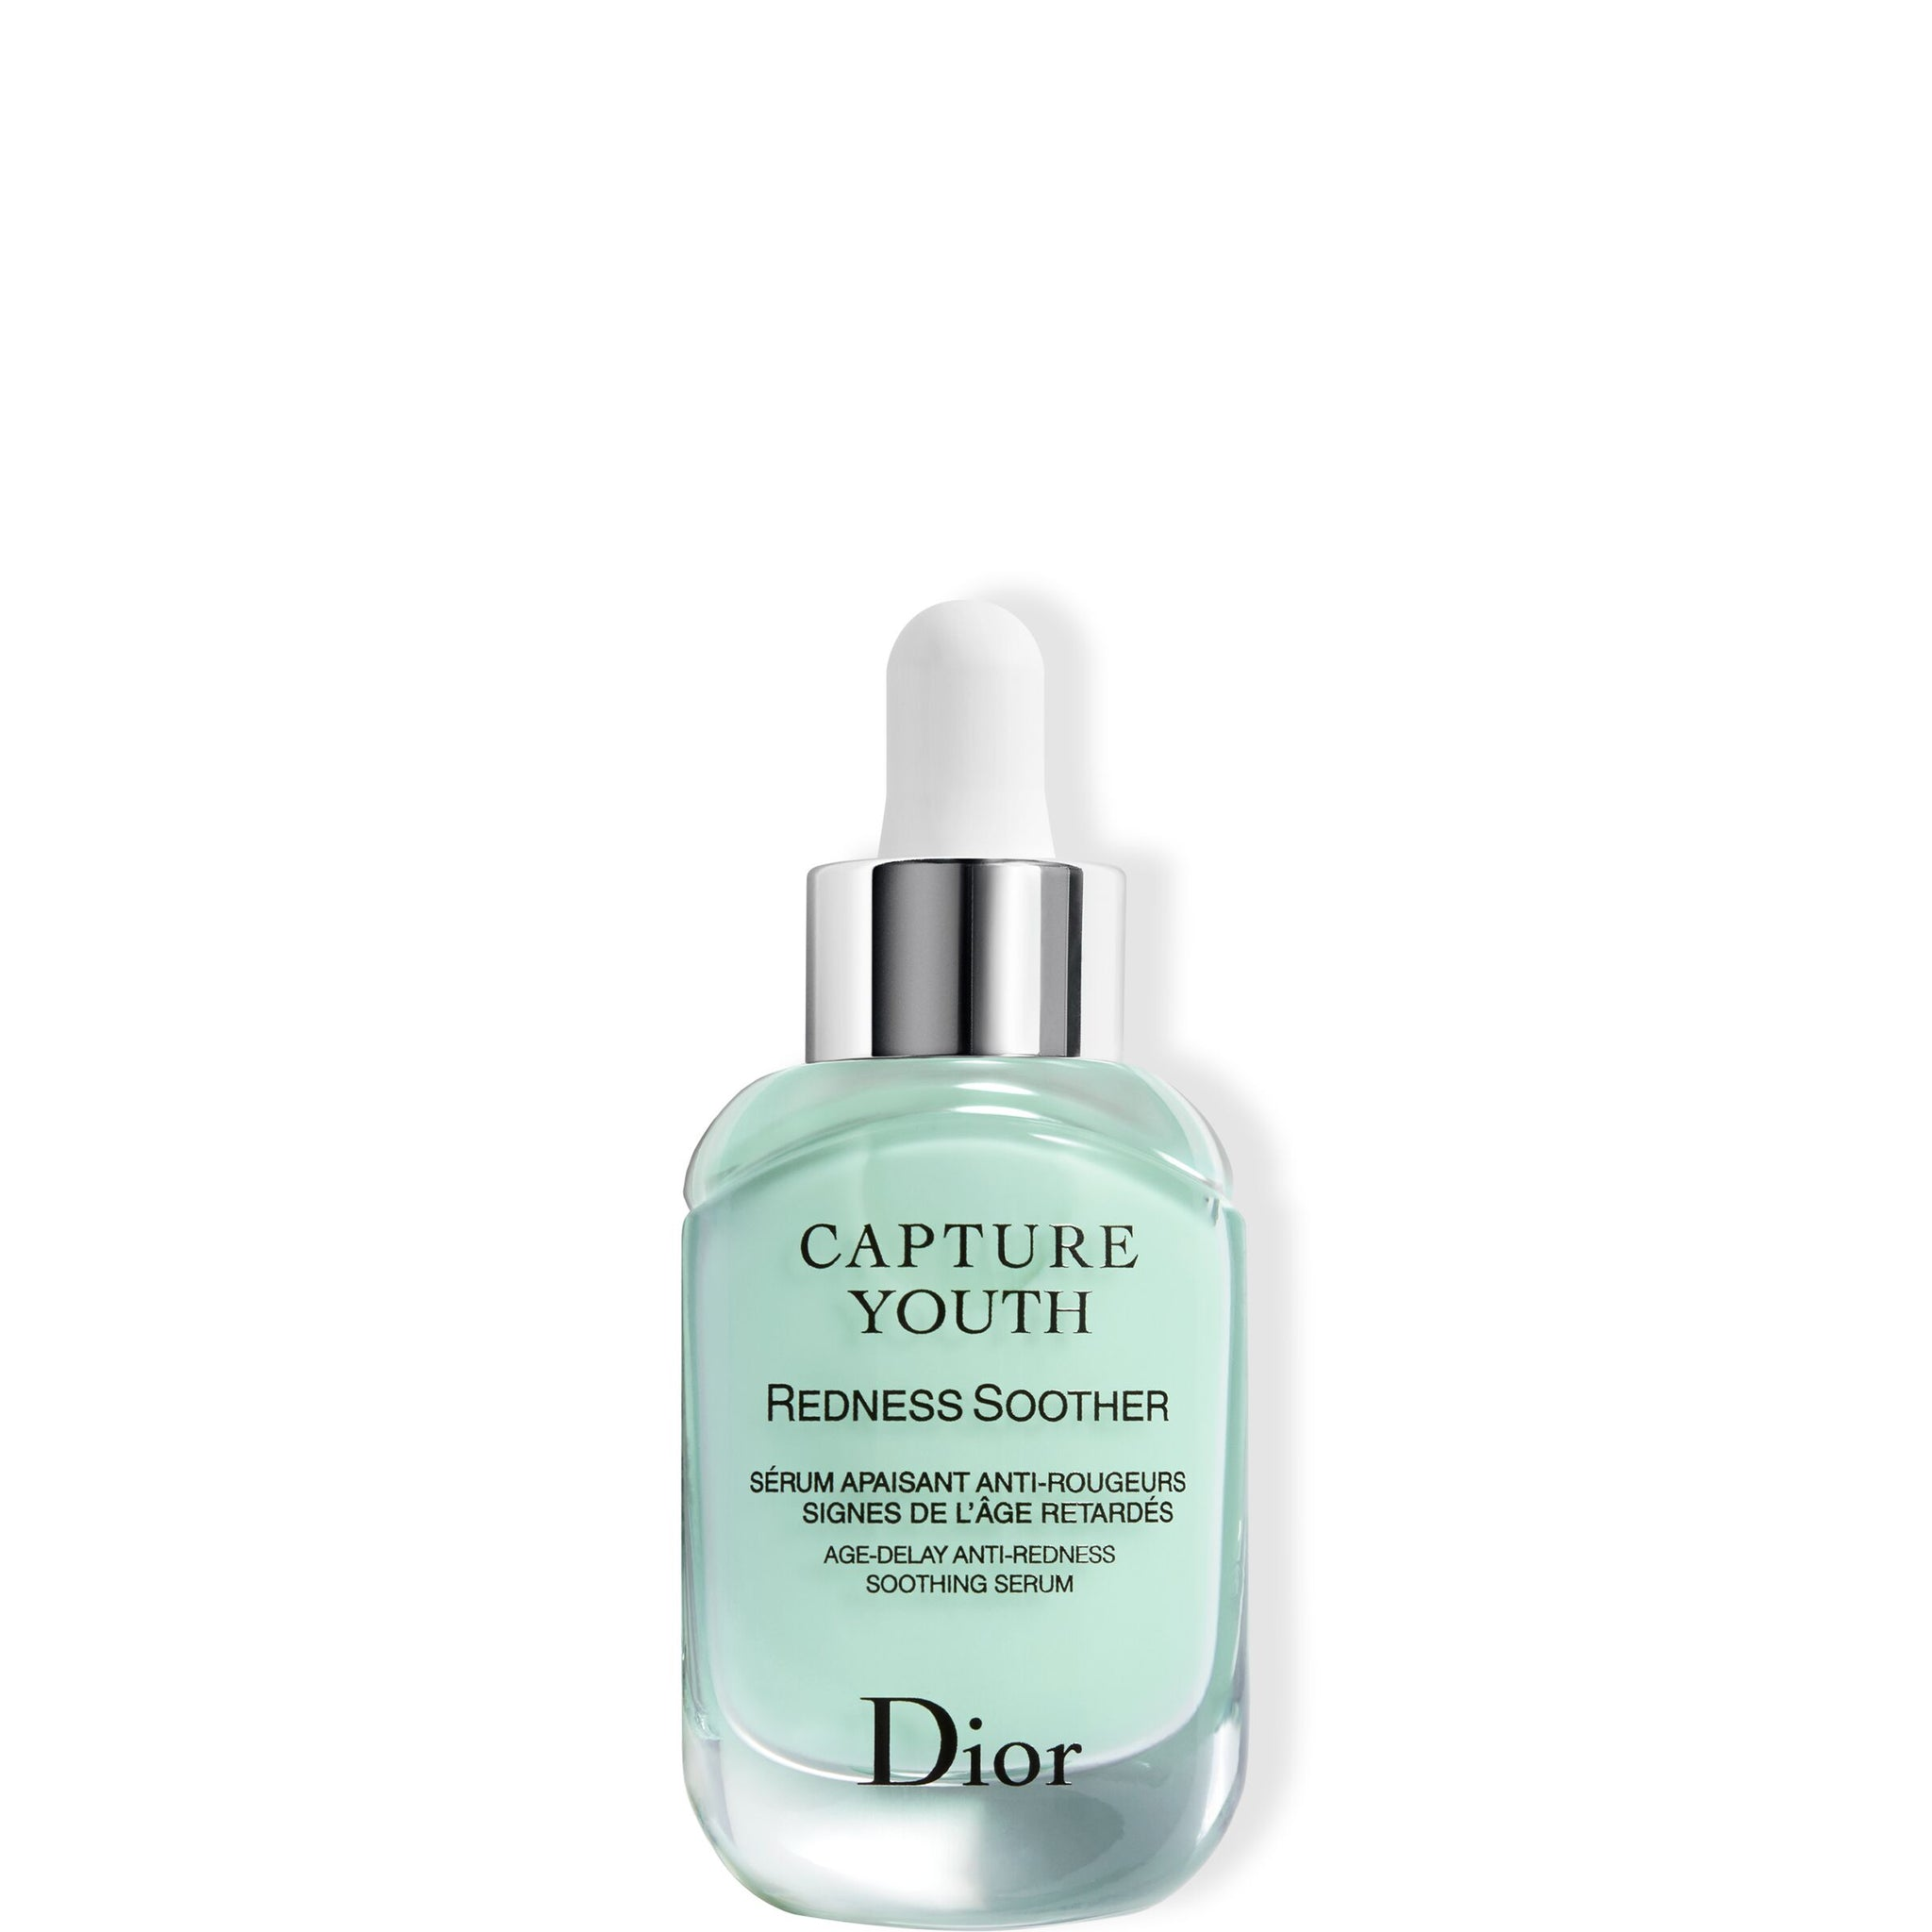 CAPTURE YOUTH | Redness soother age-delay anti-redness soothing serum